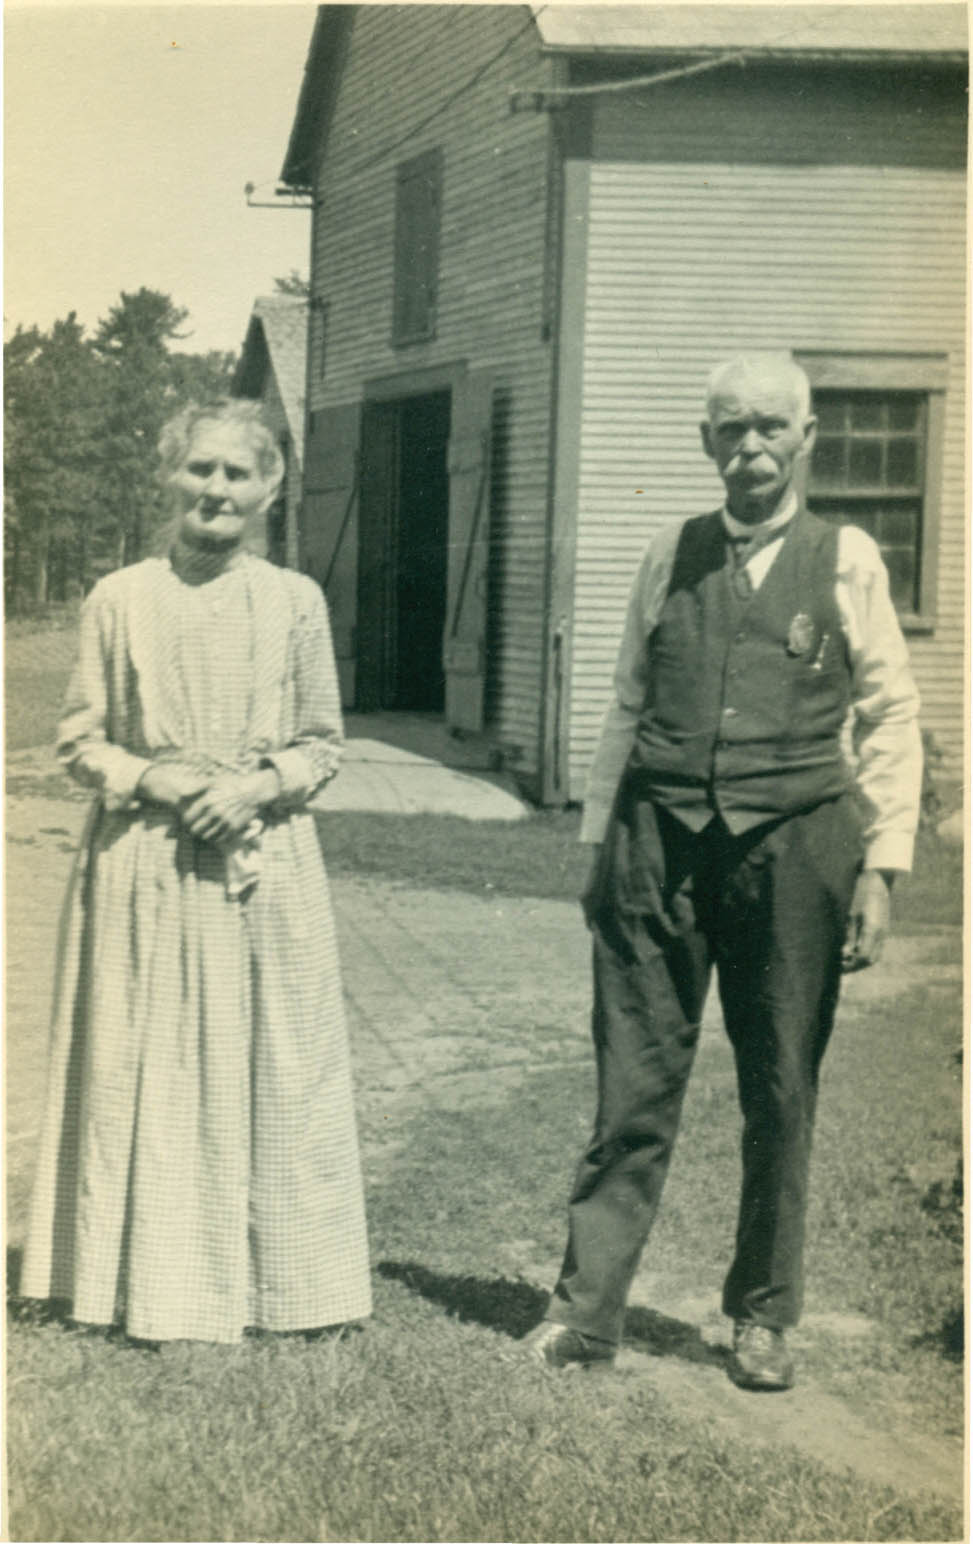 Bridget McGrath Reeves with her  husband, Sheriff Reeves, in Burlington, 1924.